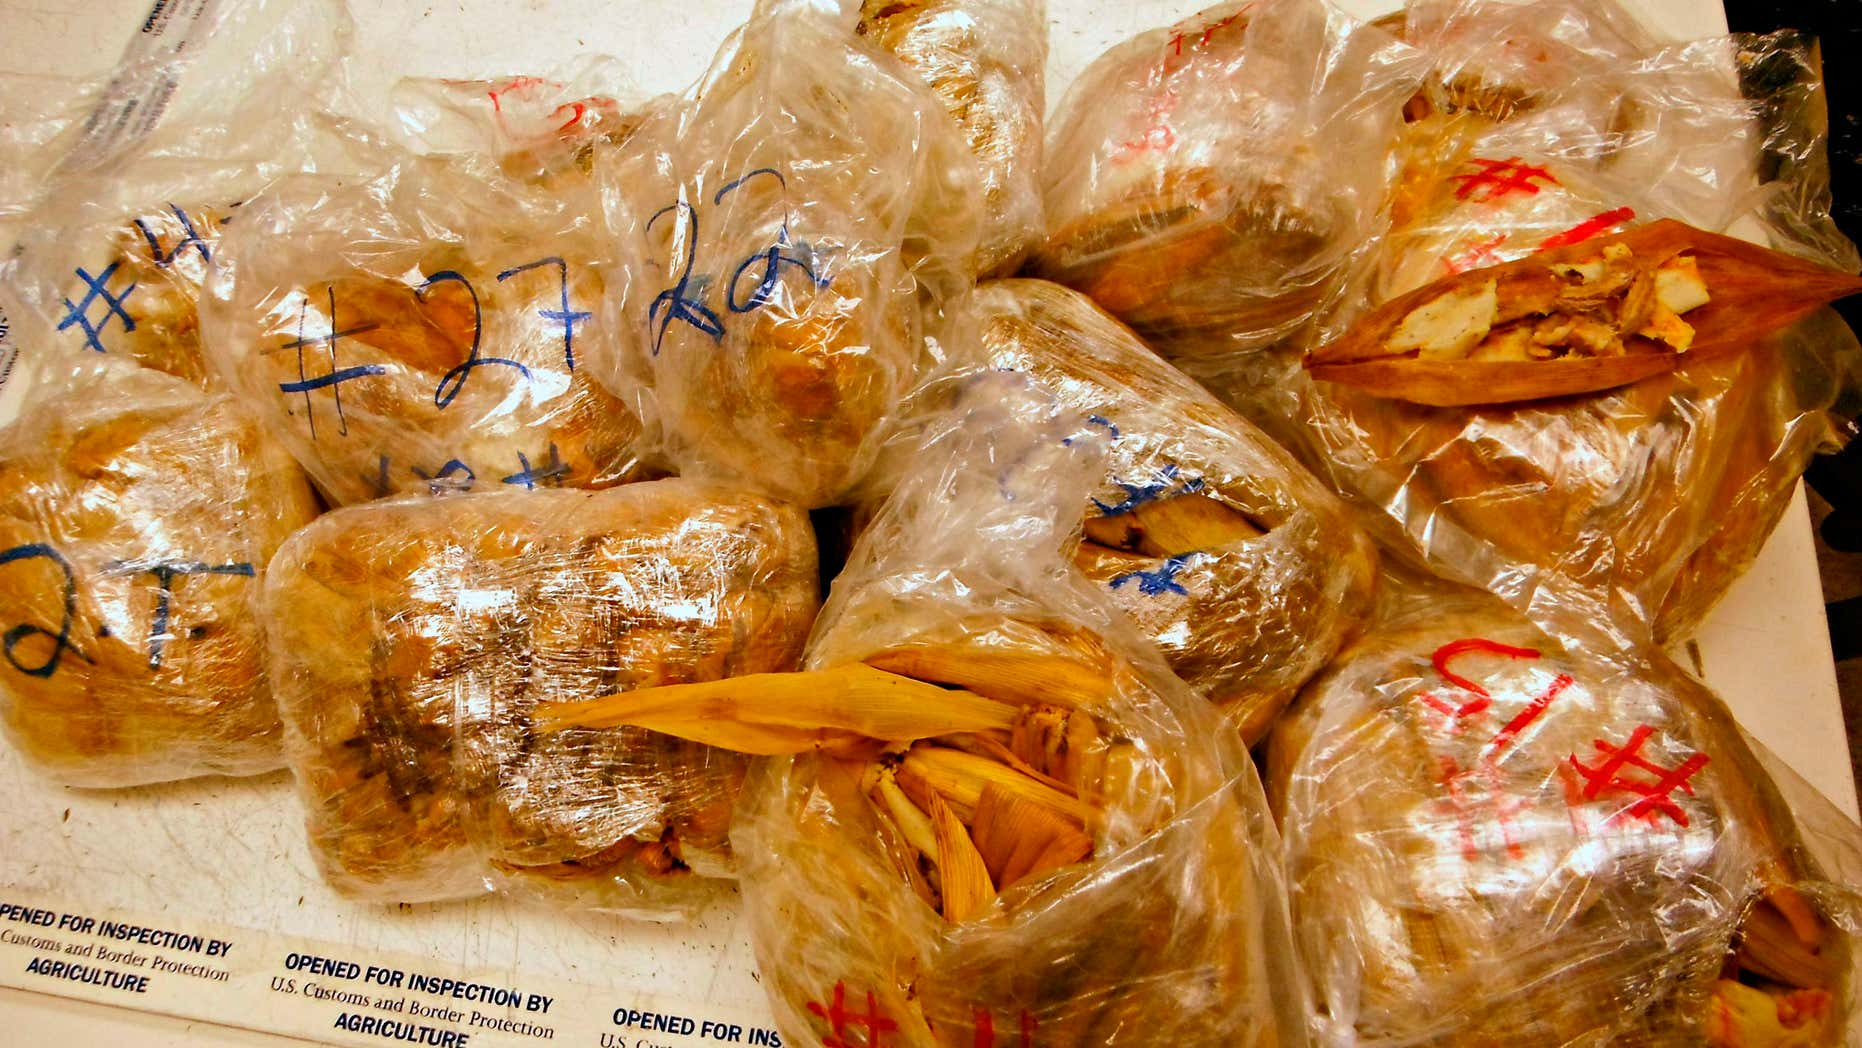 Nov. 2, 2015: This undated photo released by the U.S. Customs and Border Protection (CBP) shows seized 450 prohibited pork meat tamales discovered inside the luggage of a passenger arriving at the Los Angeles International Airport (LAX) from Mexico in Los Angeles.